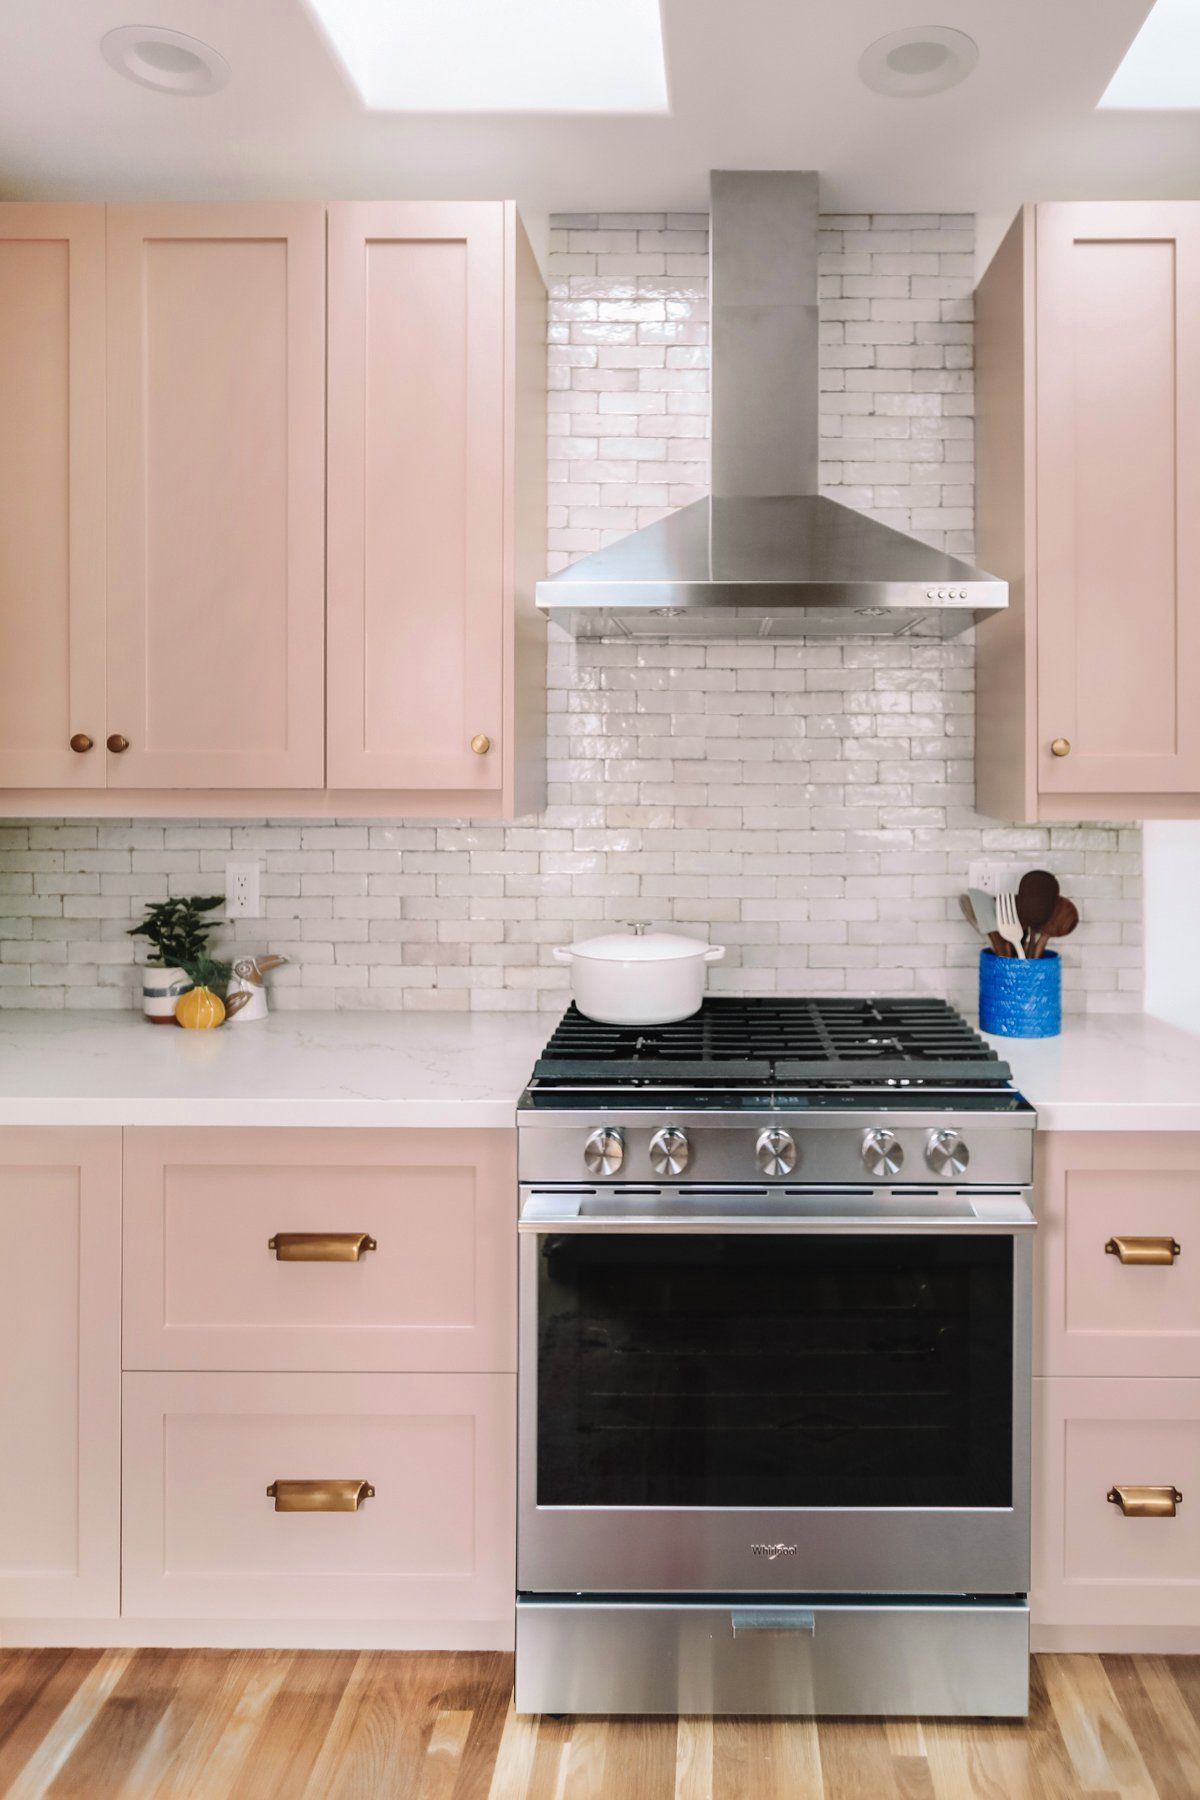 Beautiful Soft Blush Kitchen from Studio DIY - Pink kitchen cabinets, Eclectic kitchen, Kitchen cabinet trends, Kitchen renovation, Pink kitchen, Custom kitchens - Design Studio DIY Photographer Jeff Mindell Location Los Angeles, CA Paint color DunnEdwards Galveston Tan